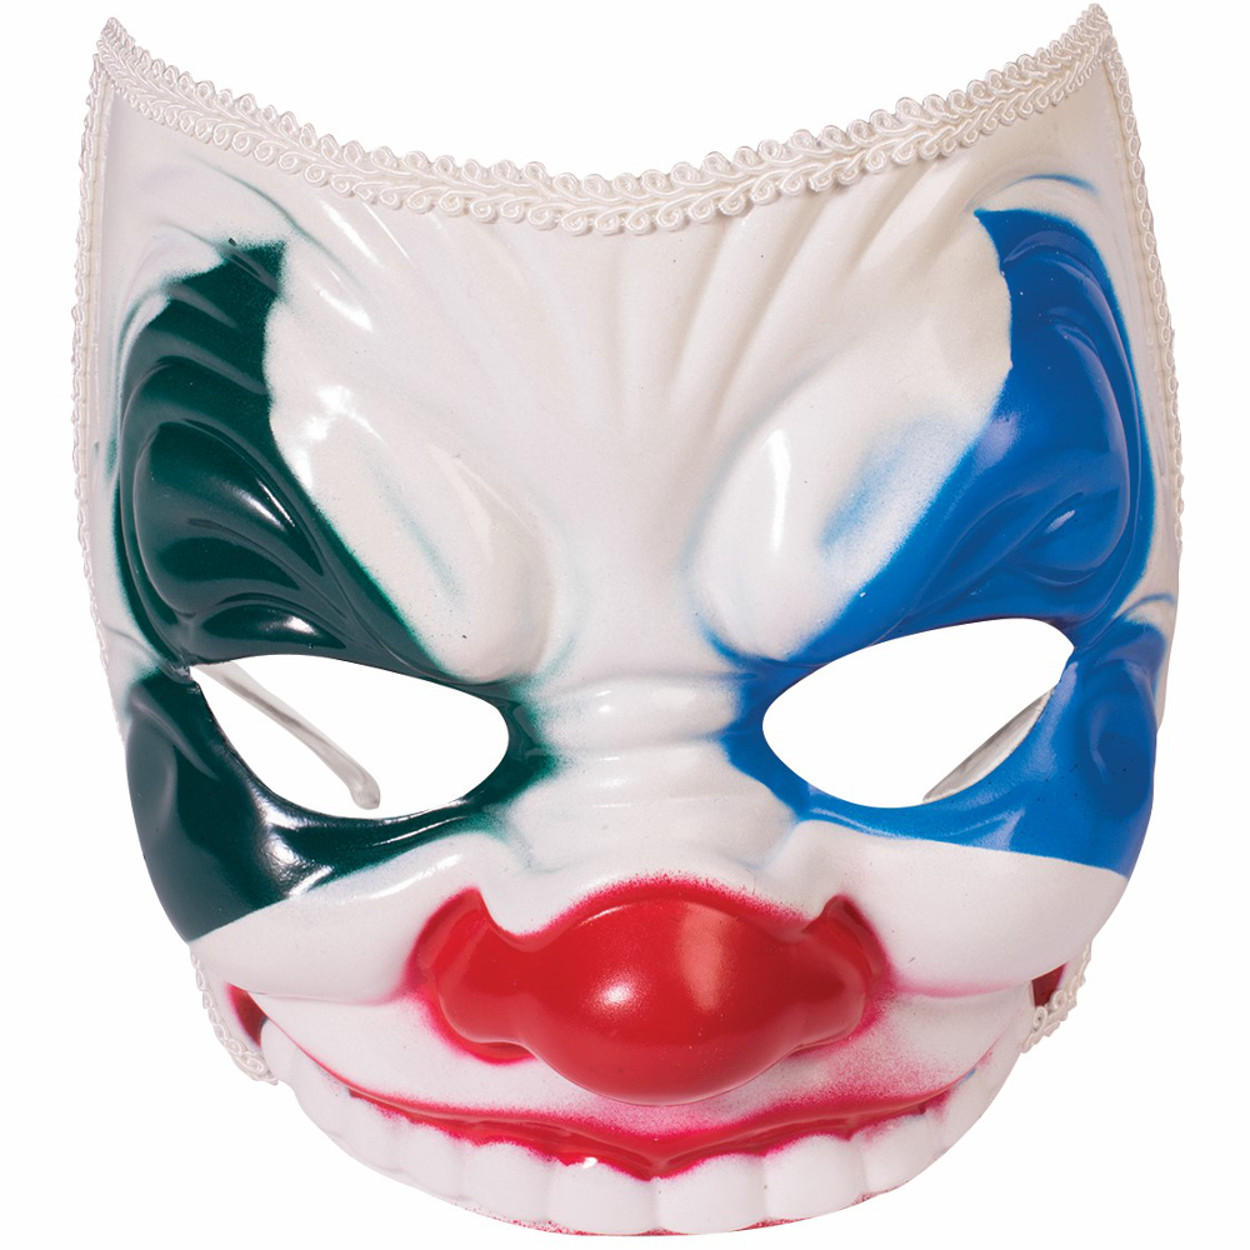 Adult Scary Evil Clown Mask With Eyeglass Frame Costume Accessory